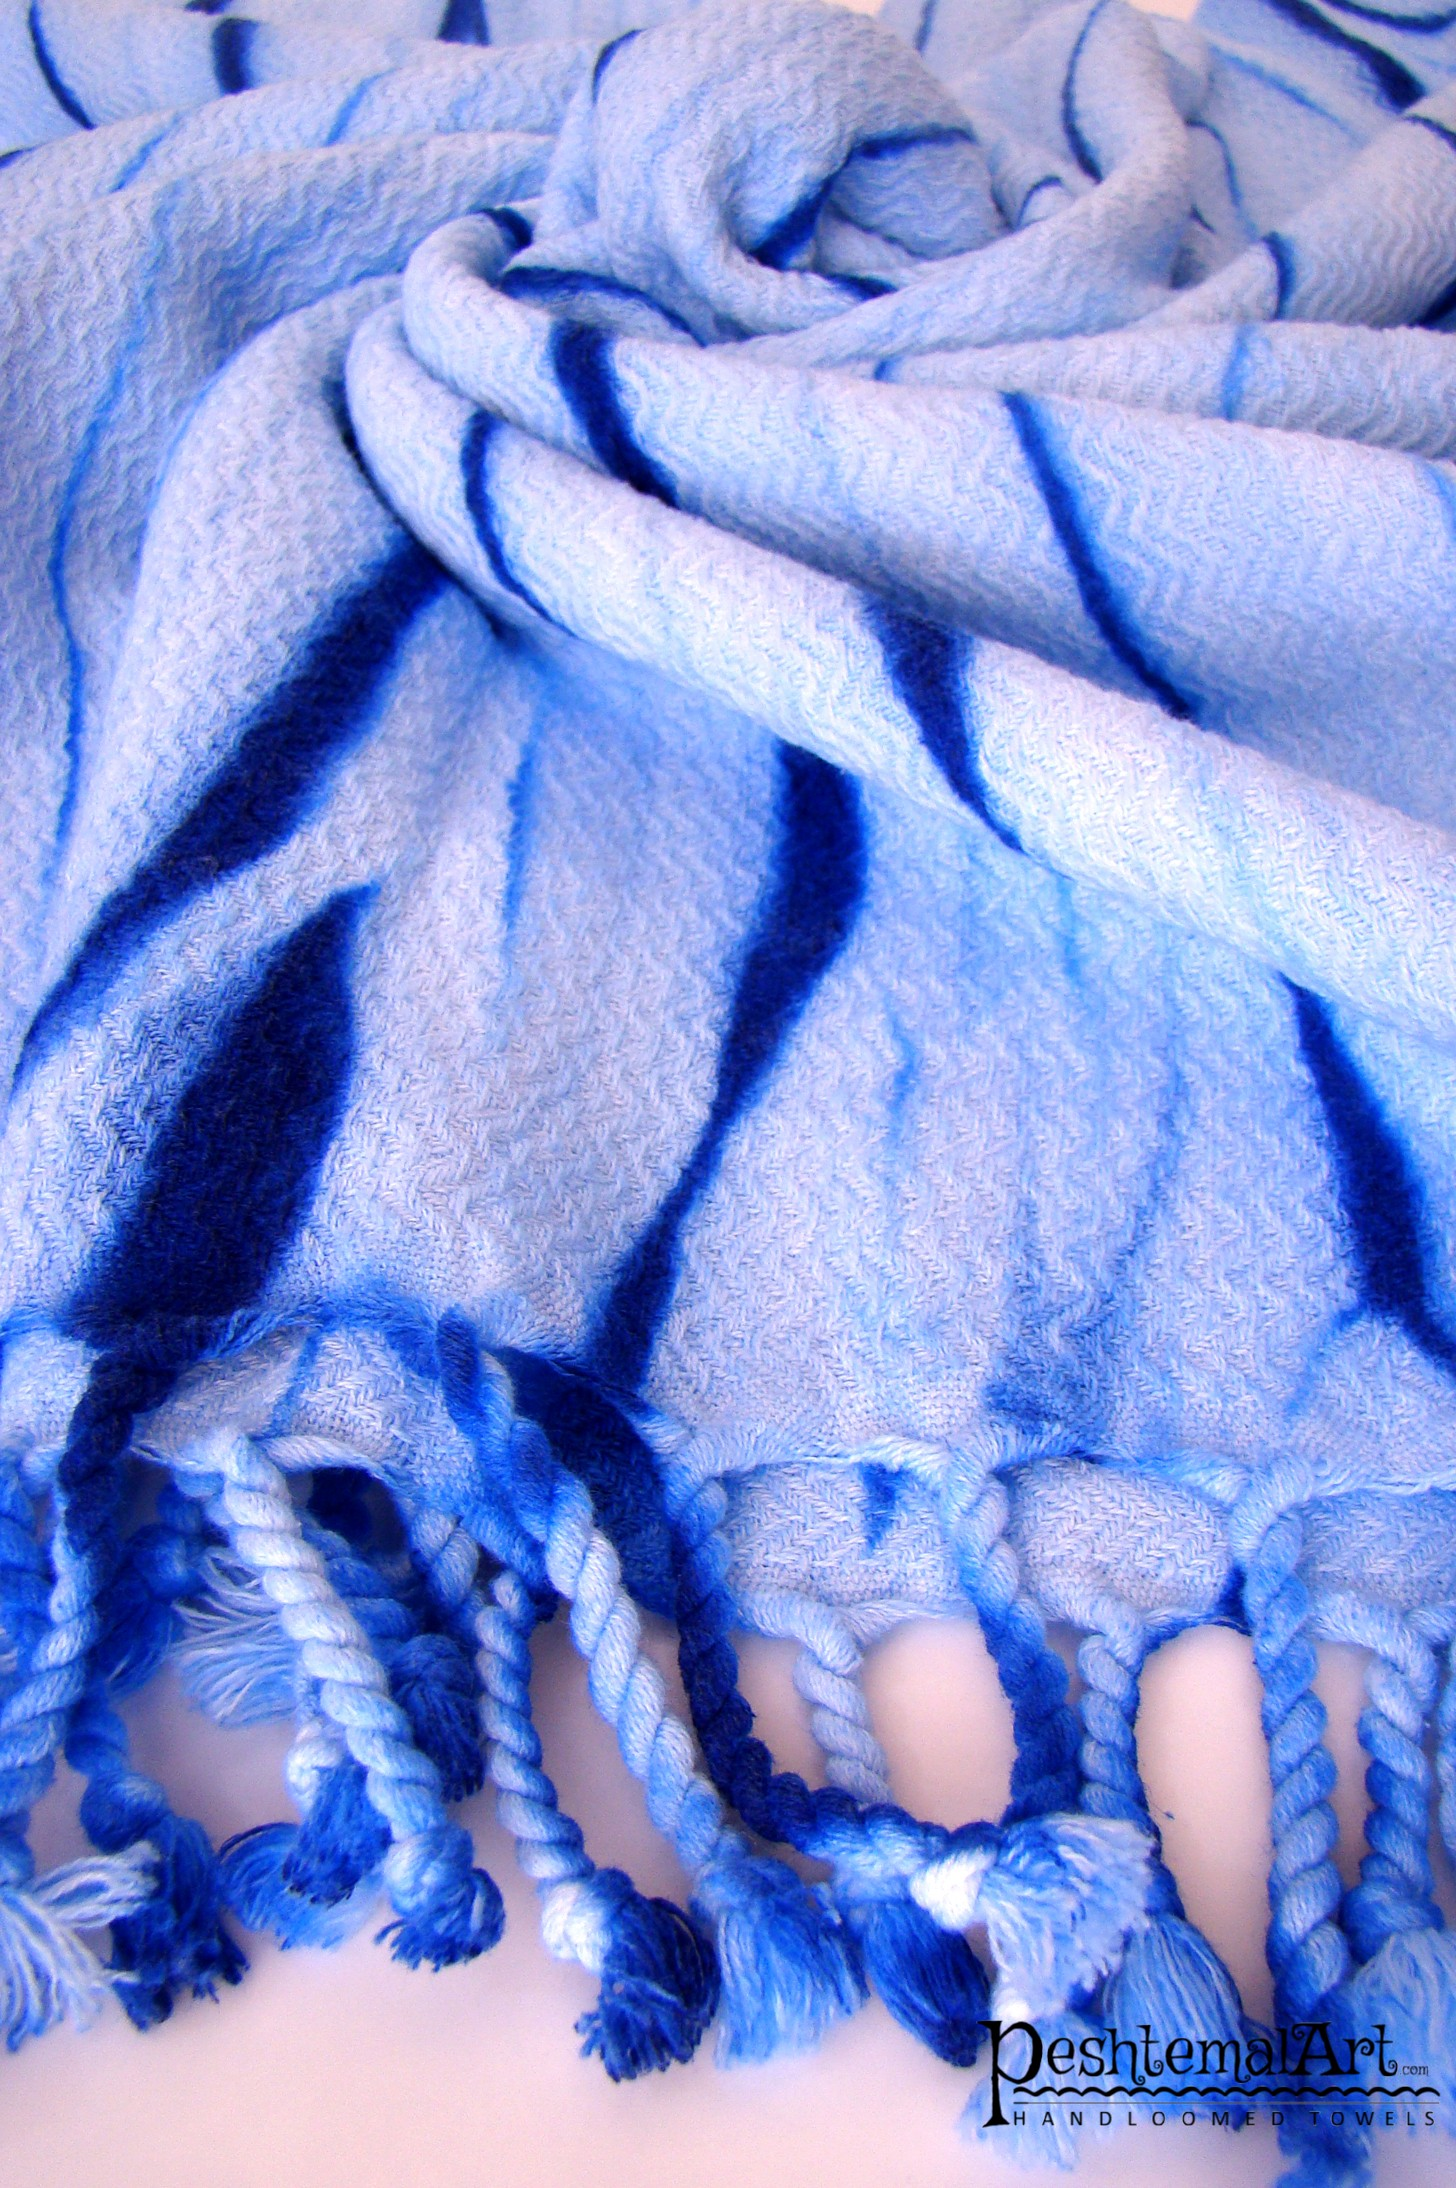 Blue Batik Beach Towel